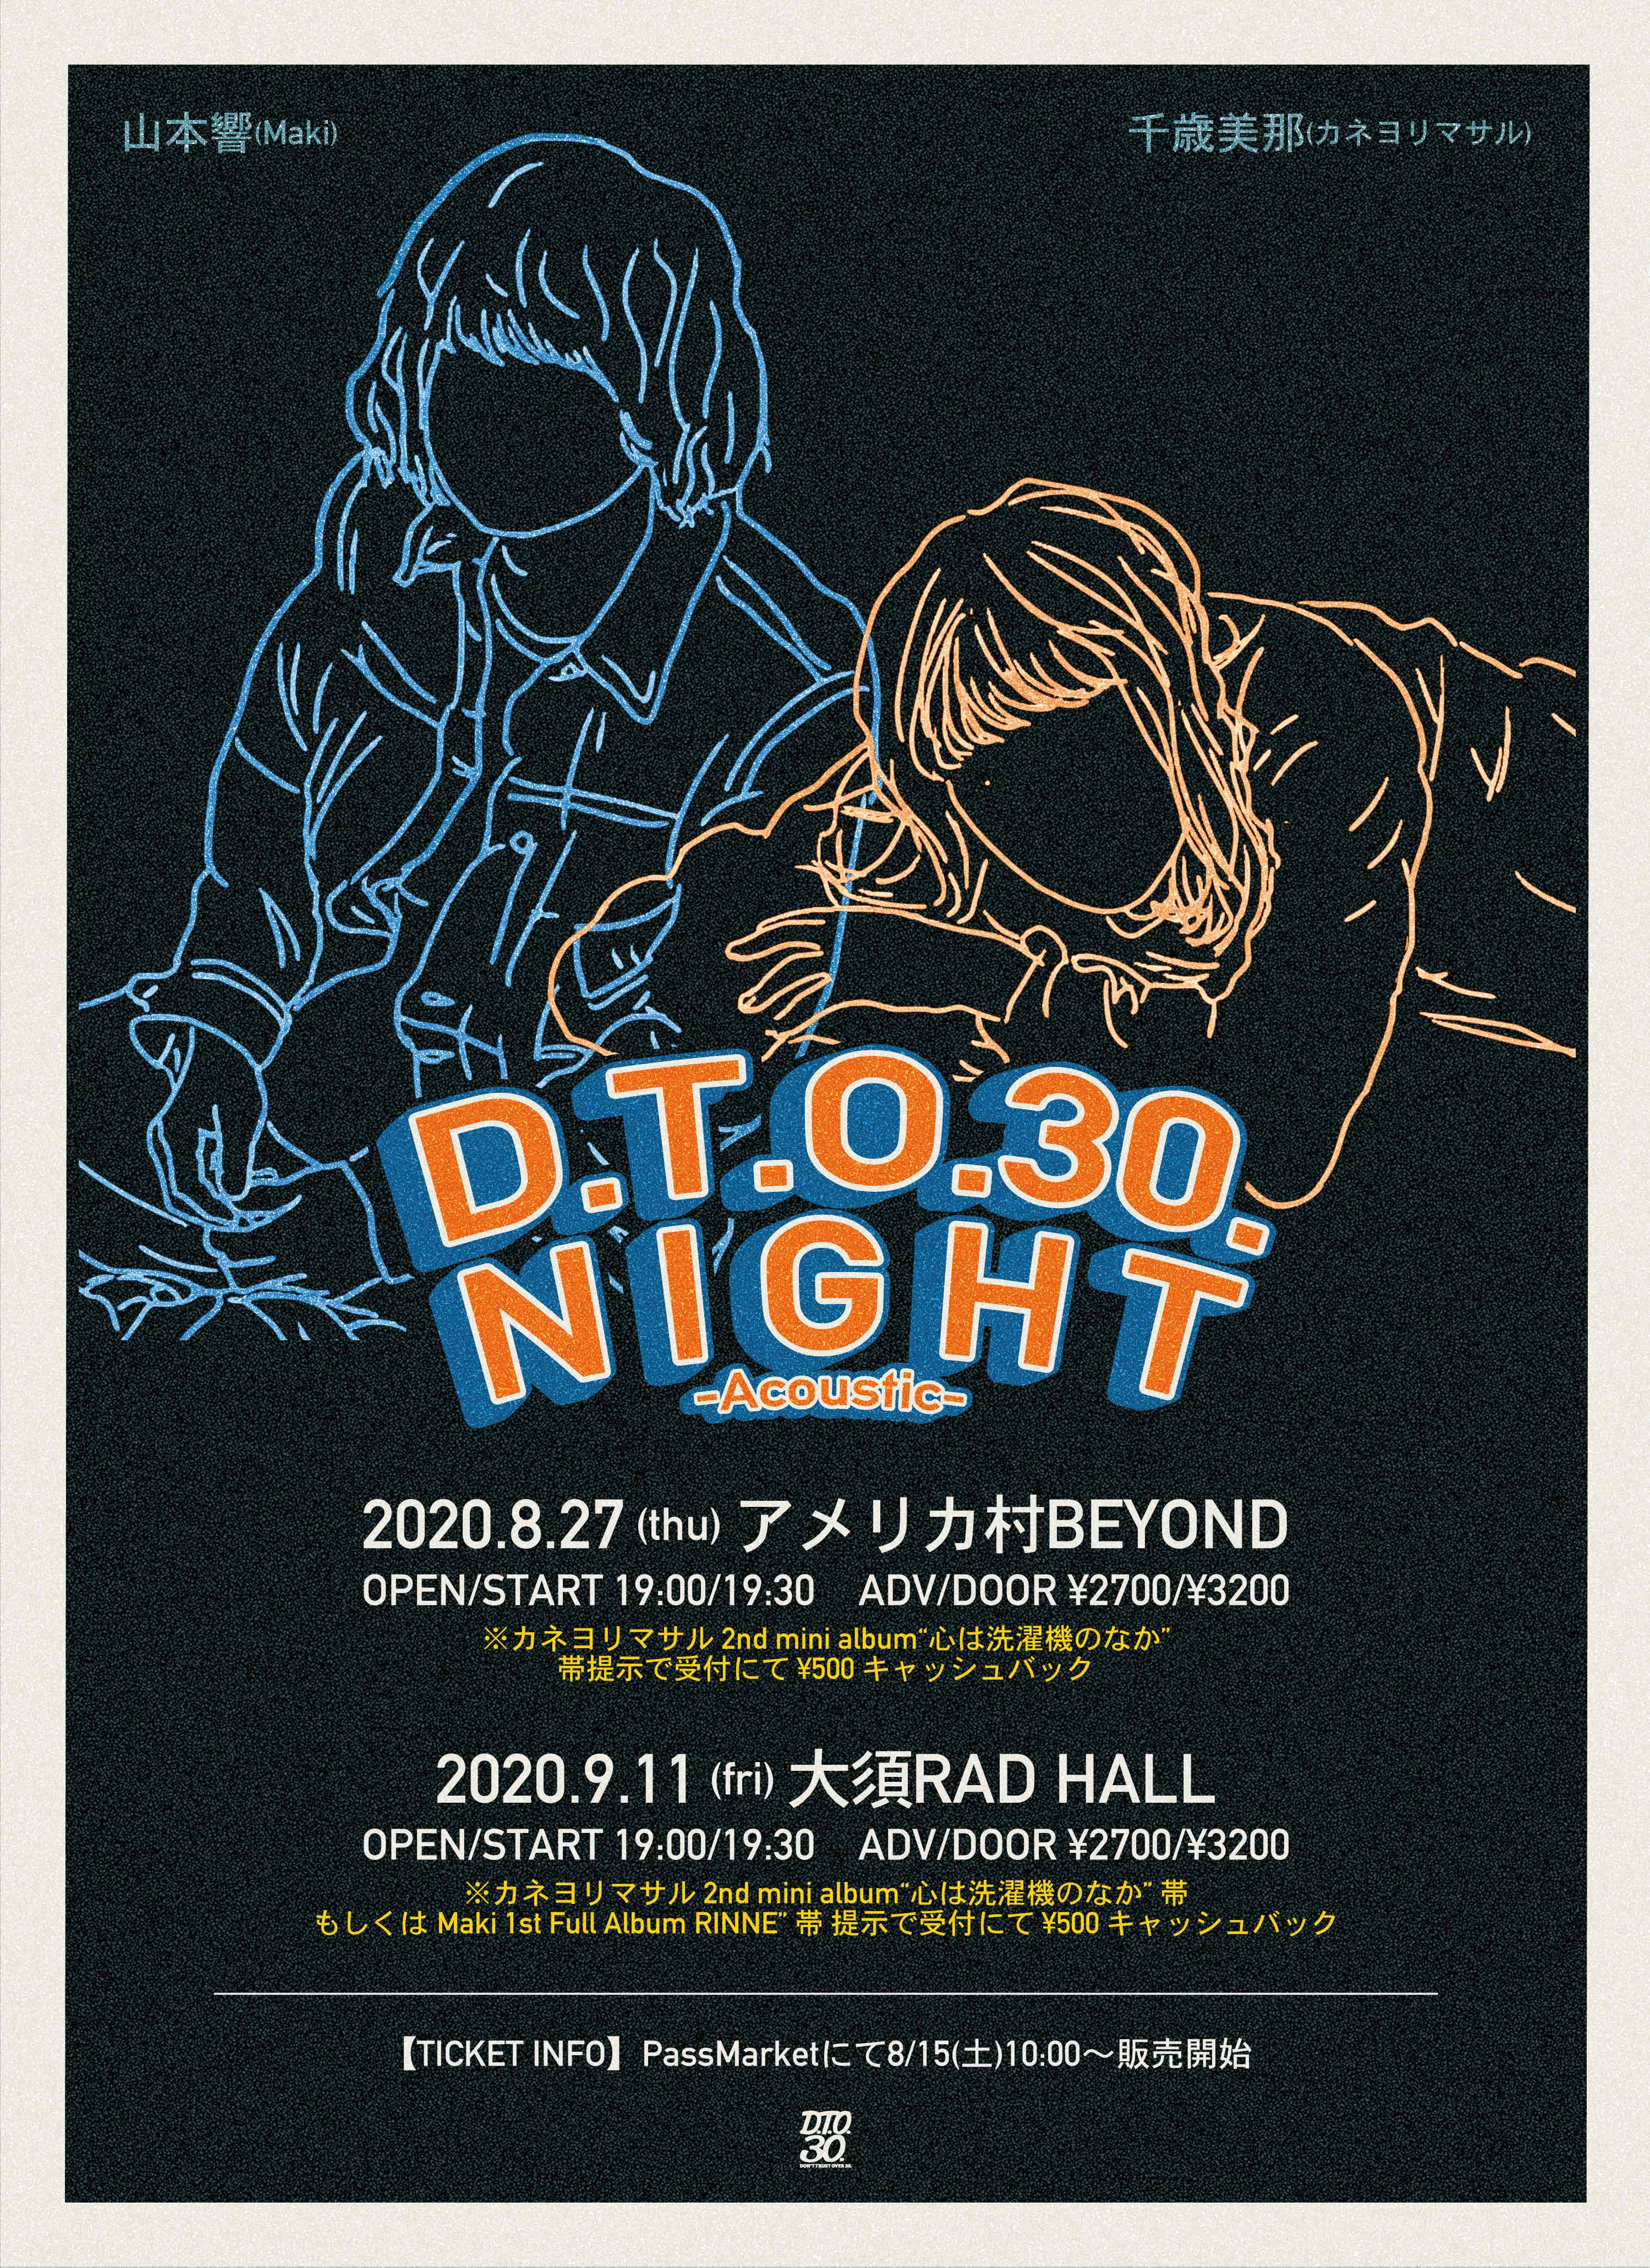 D.T.O.30. NIGHT -Acoustic-